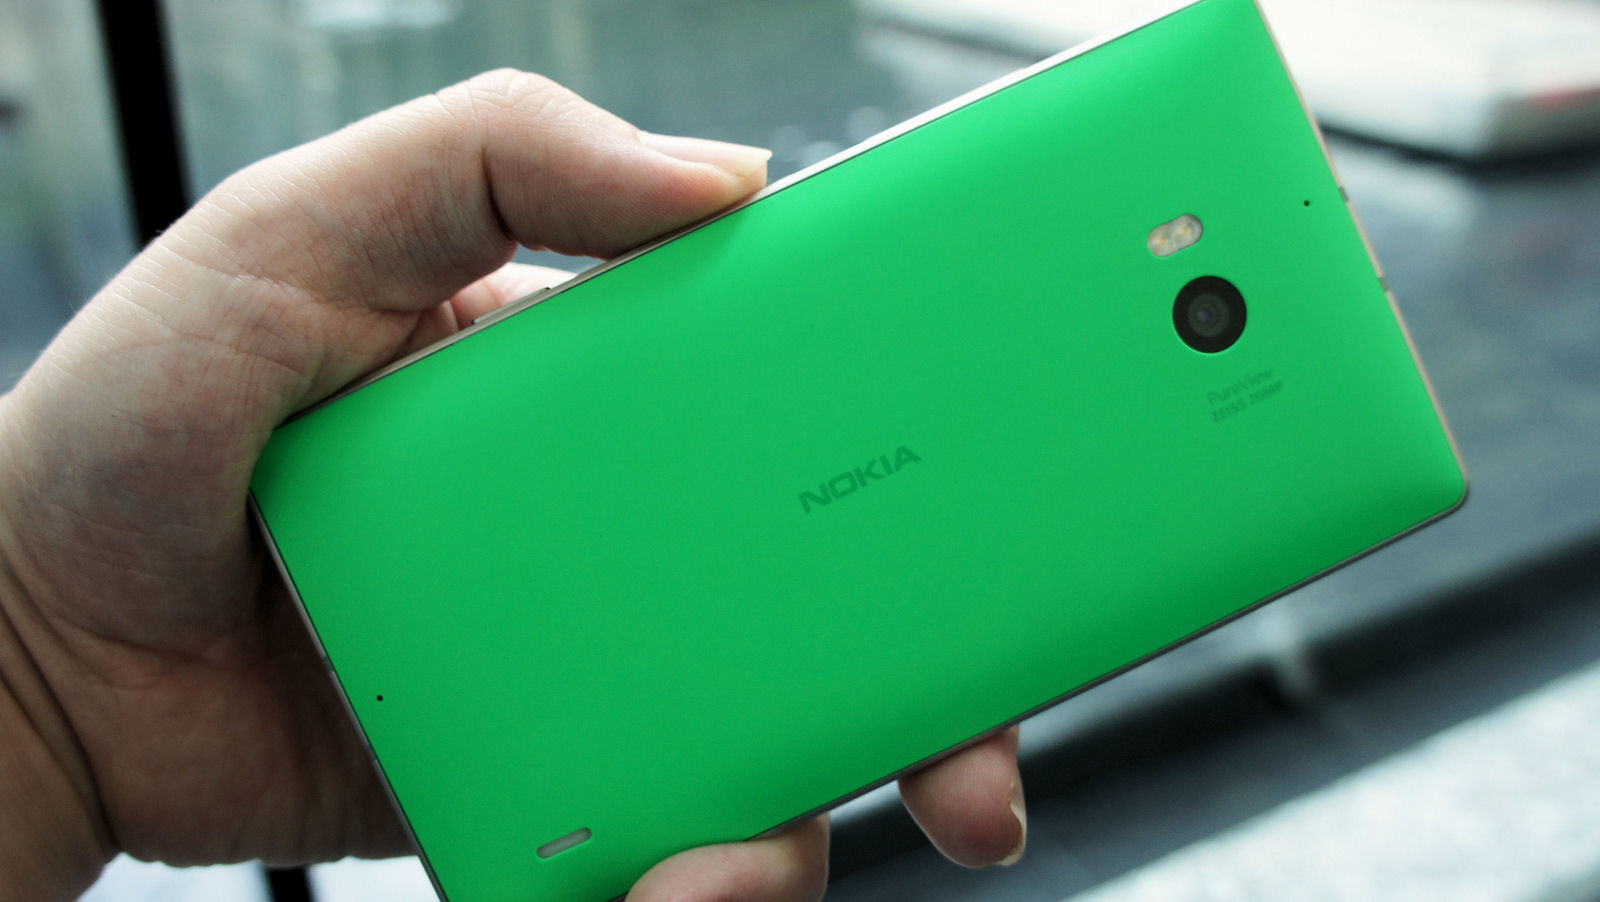 Lumia 930, which we'll be seeing Lumia Camera 5 on very soon